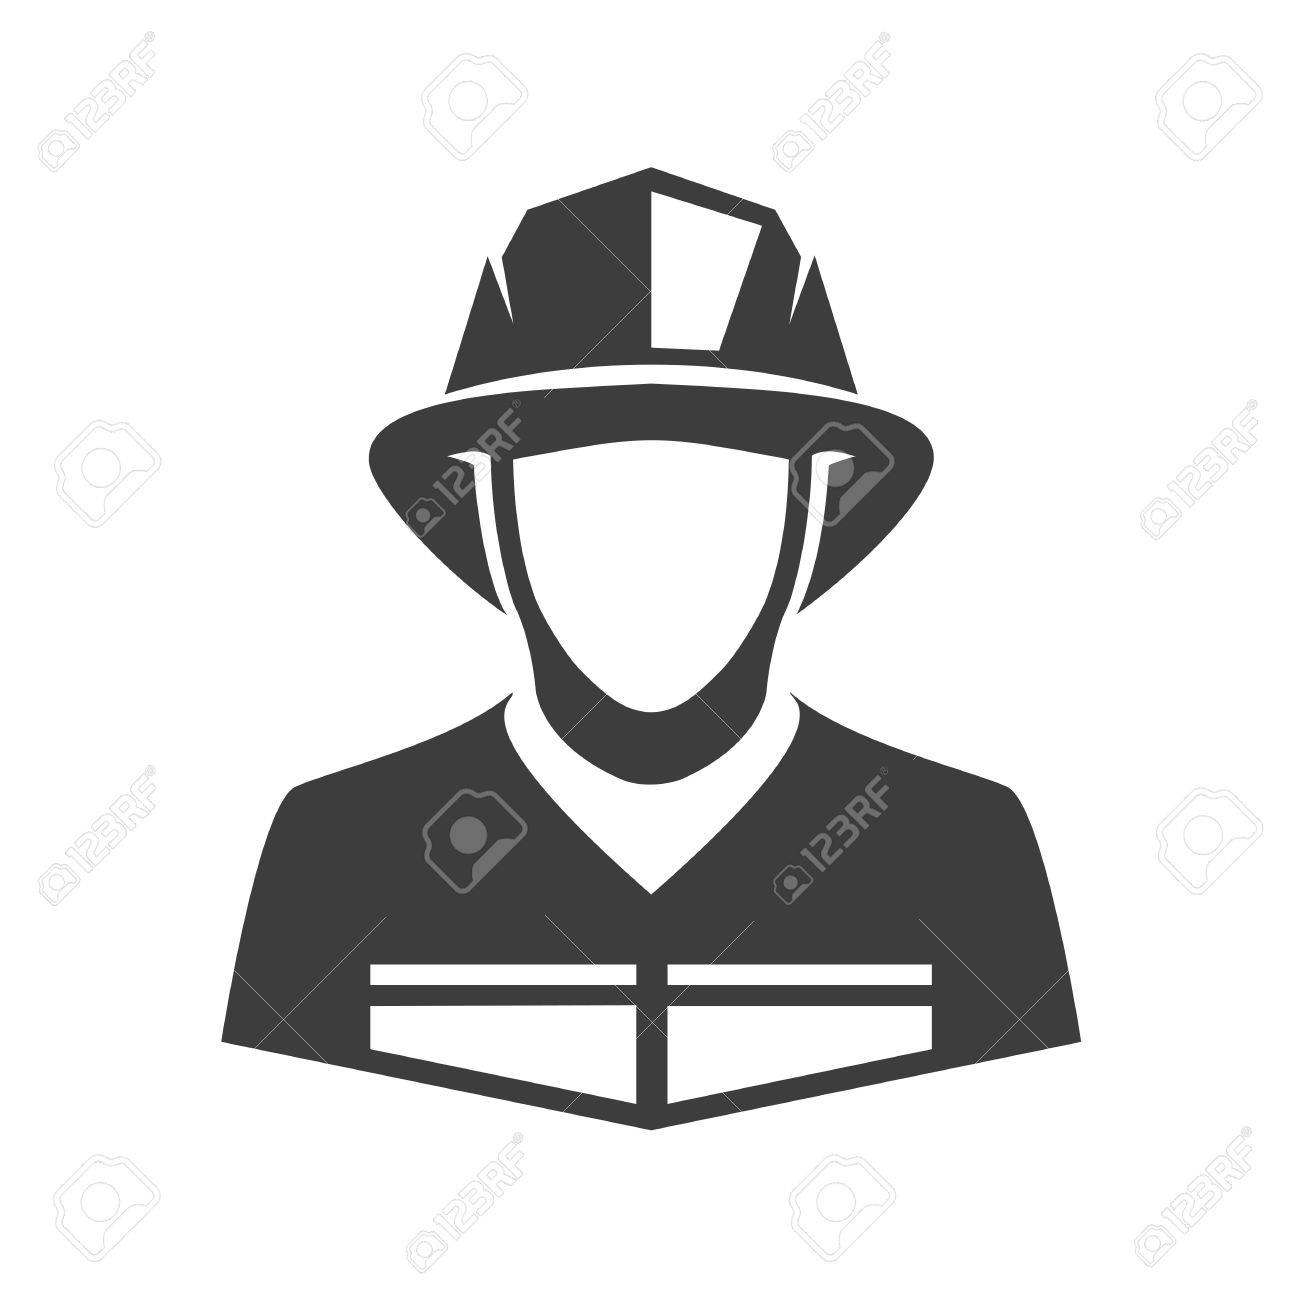 Fireman vector icon. Illustration of fireman isolated on white background in flat style. Icon of man in fireman uniform. - 61190940